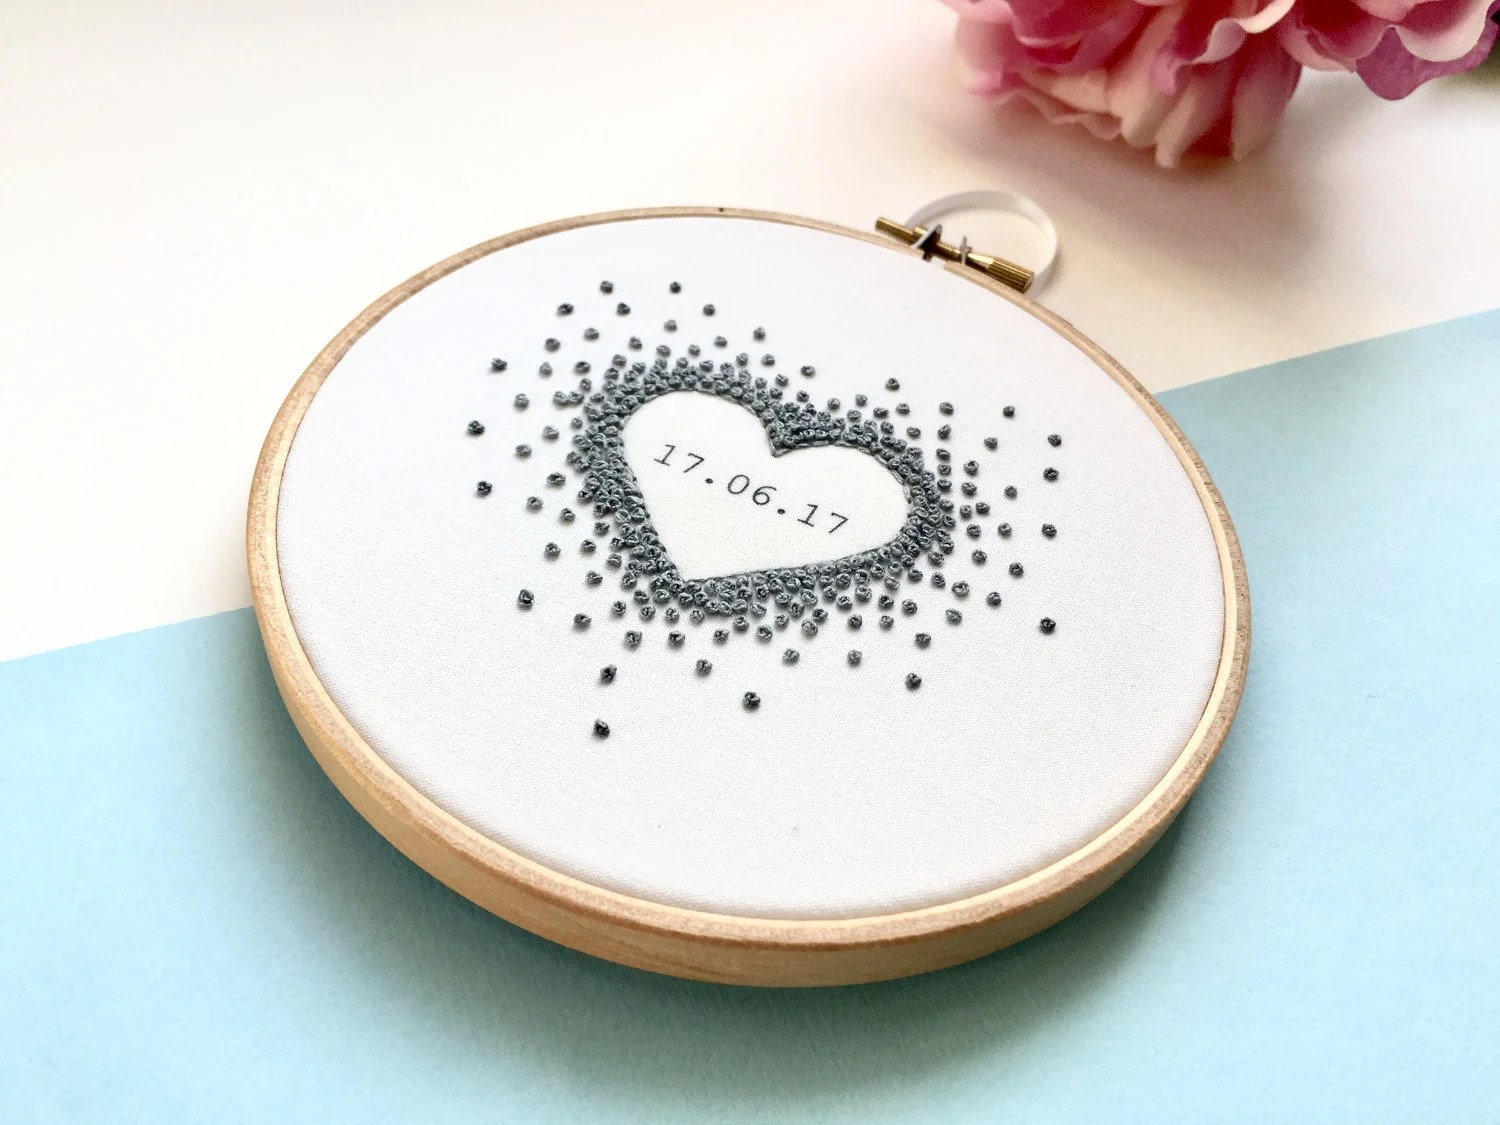 Custom Wedding Gift Anniversary Date Gift Embroidery Hoop